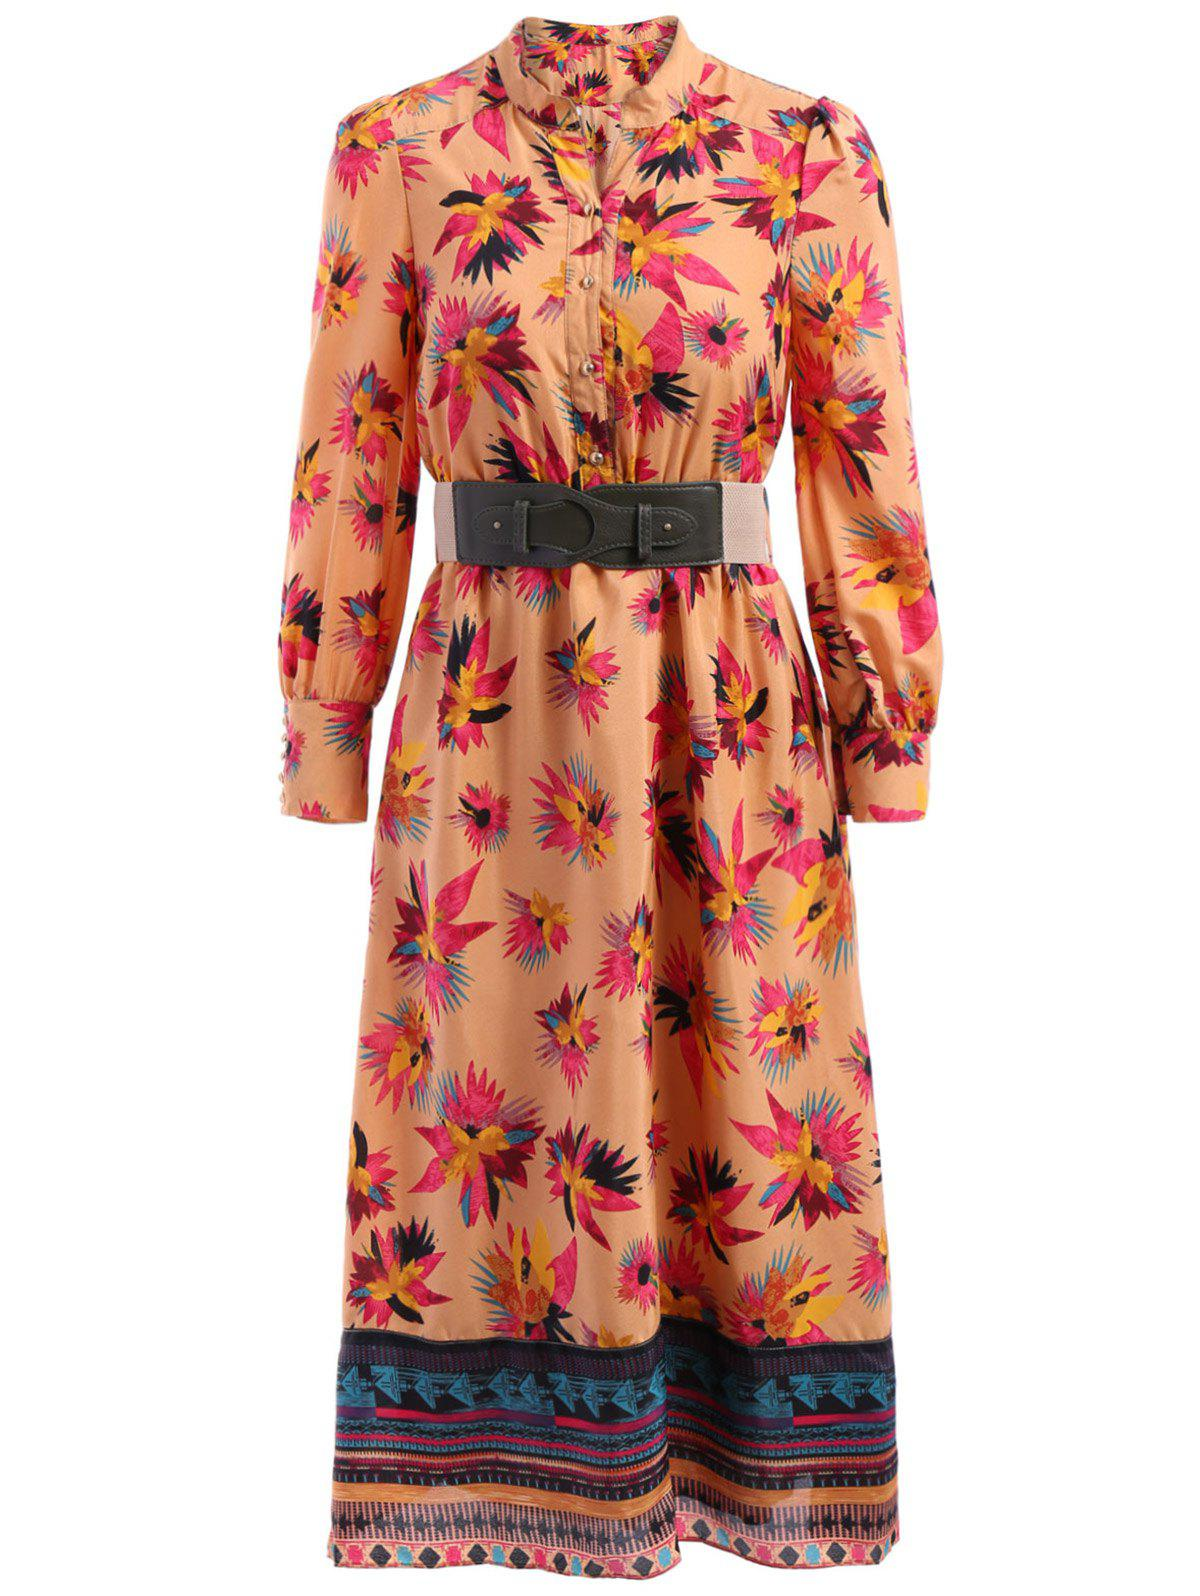 Affordable Bohemian Stand-Up Collar Long Sleeve Printed Belted Dress For Women